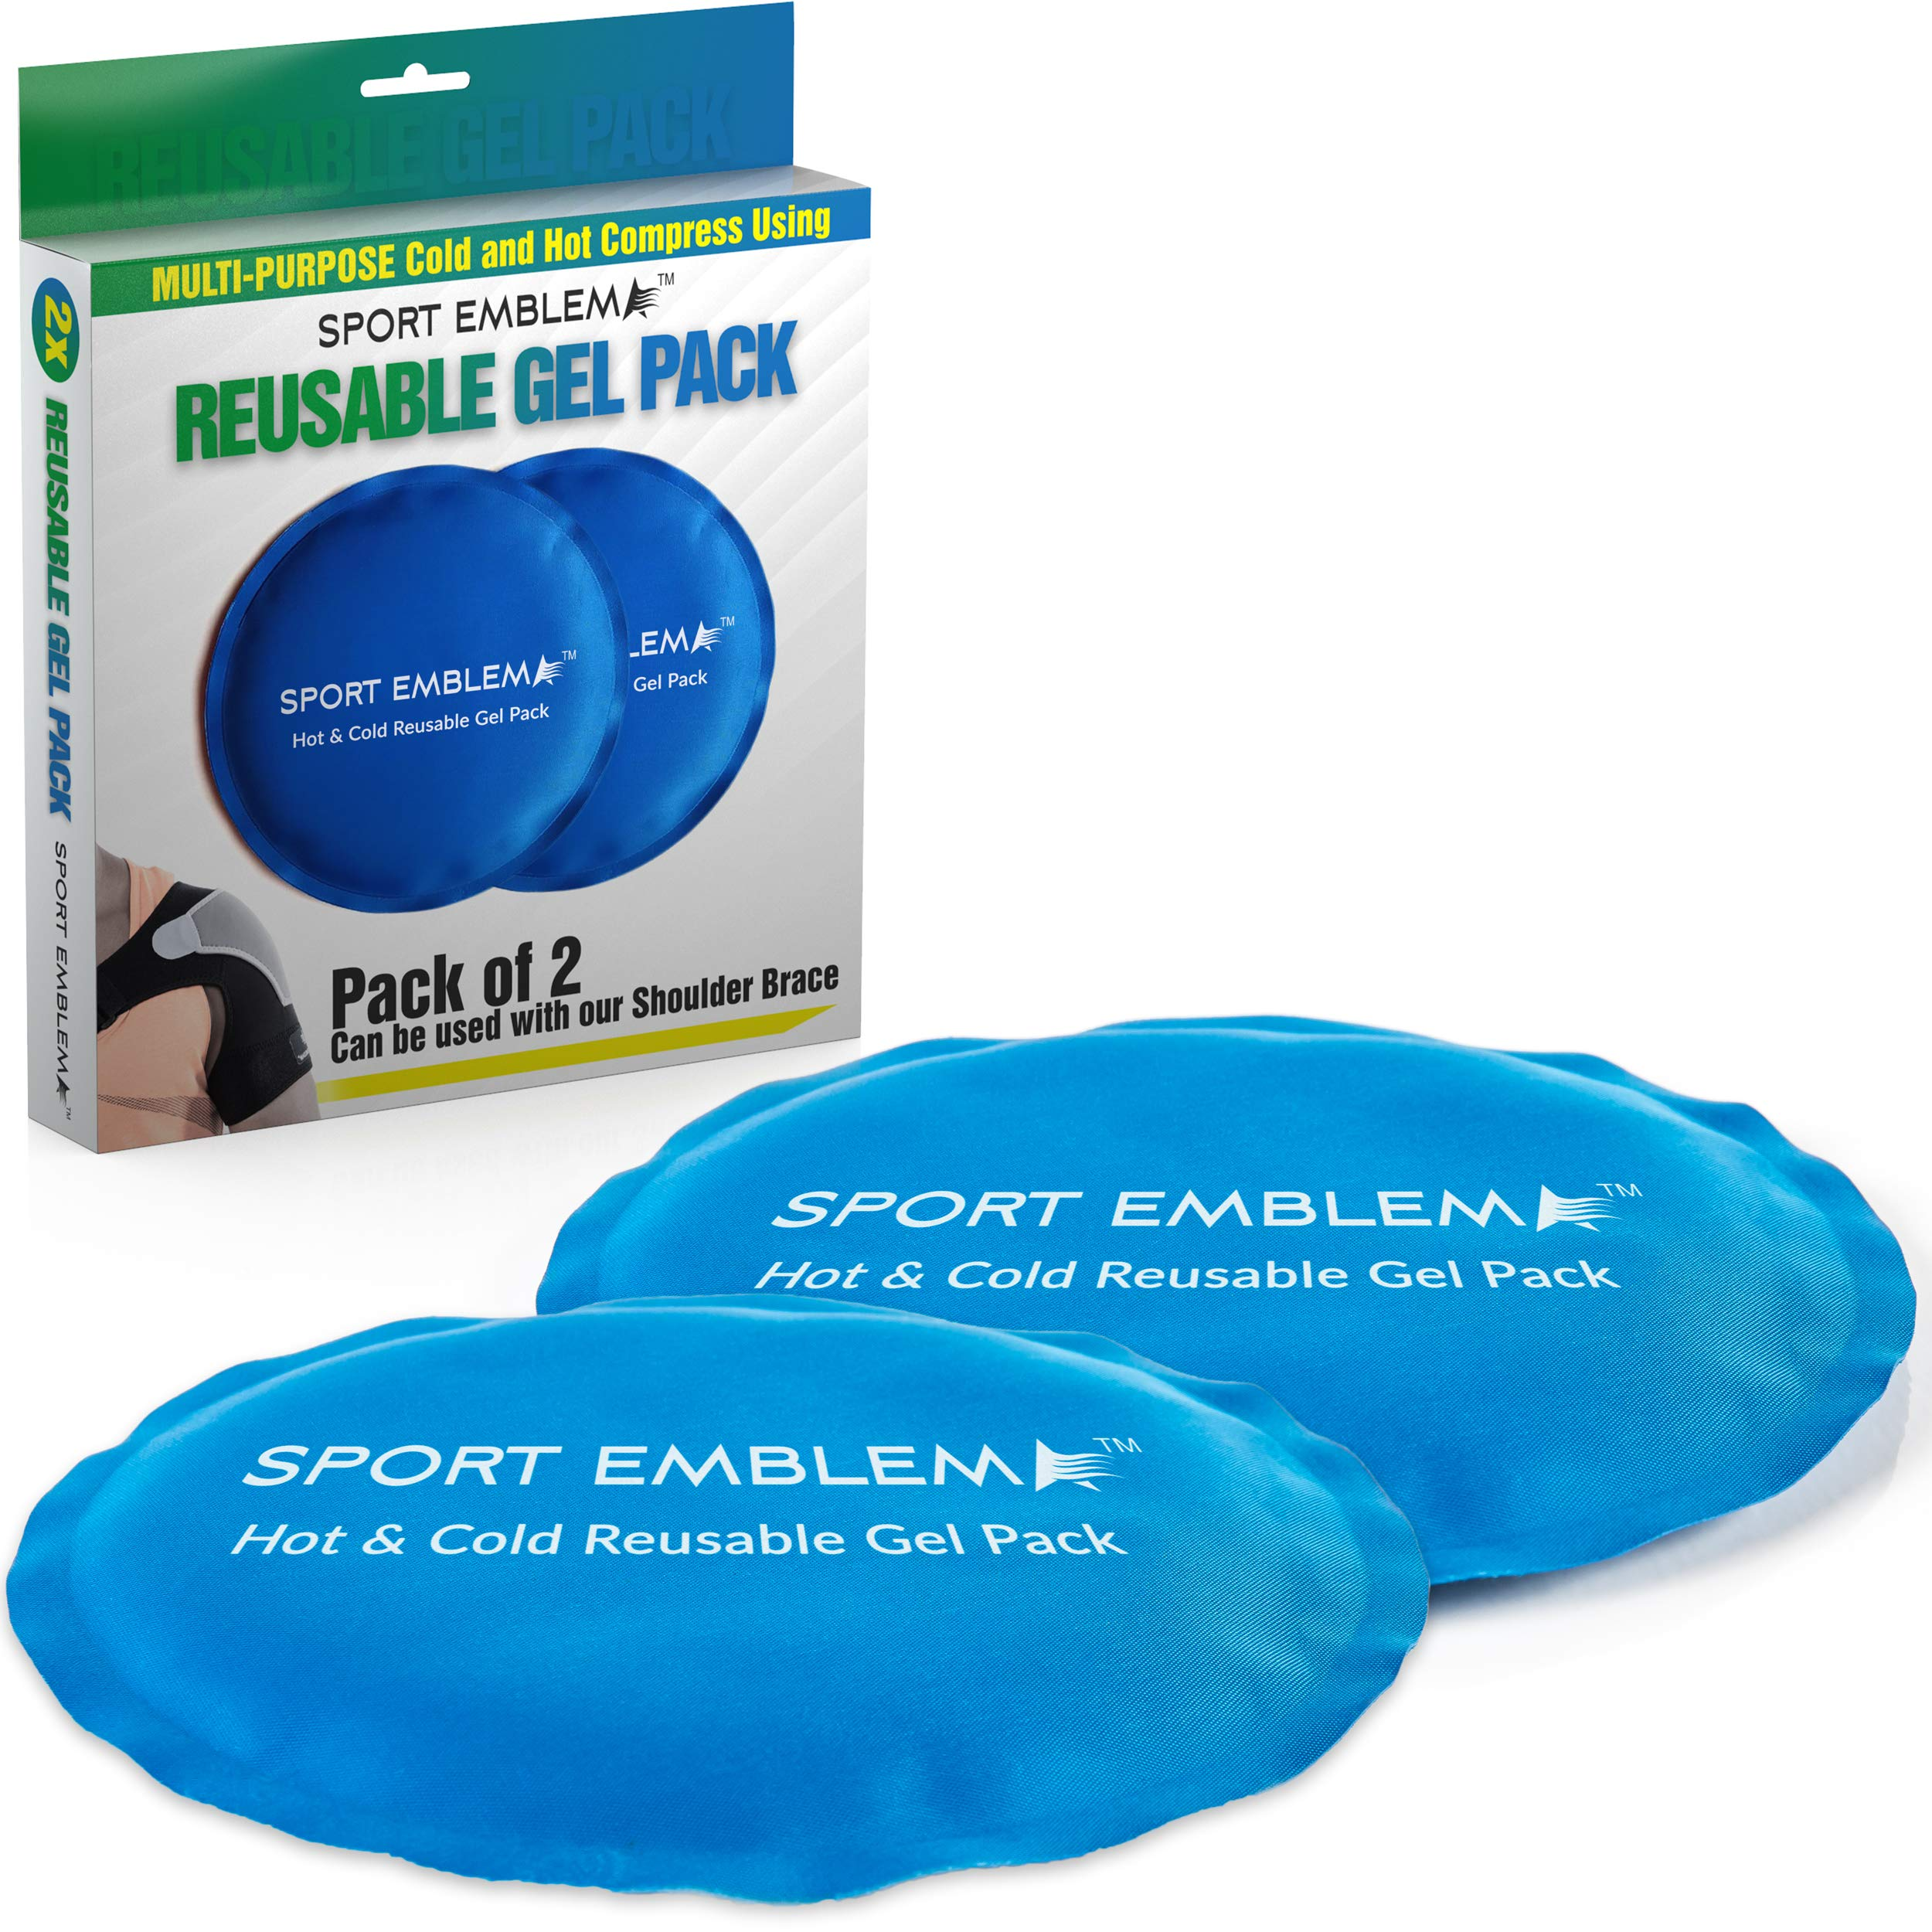 Ice Packs for Injuries Reusable, 2 x Gel Packs for Icing Injuries Kids or Adults, Hot or Cold Compress Microwavable and Refreezable, Gel Ice Packs Reusable by Sport Emblema